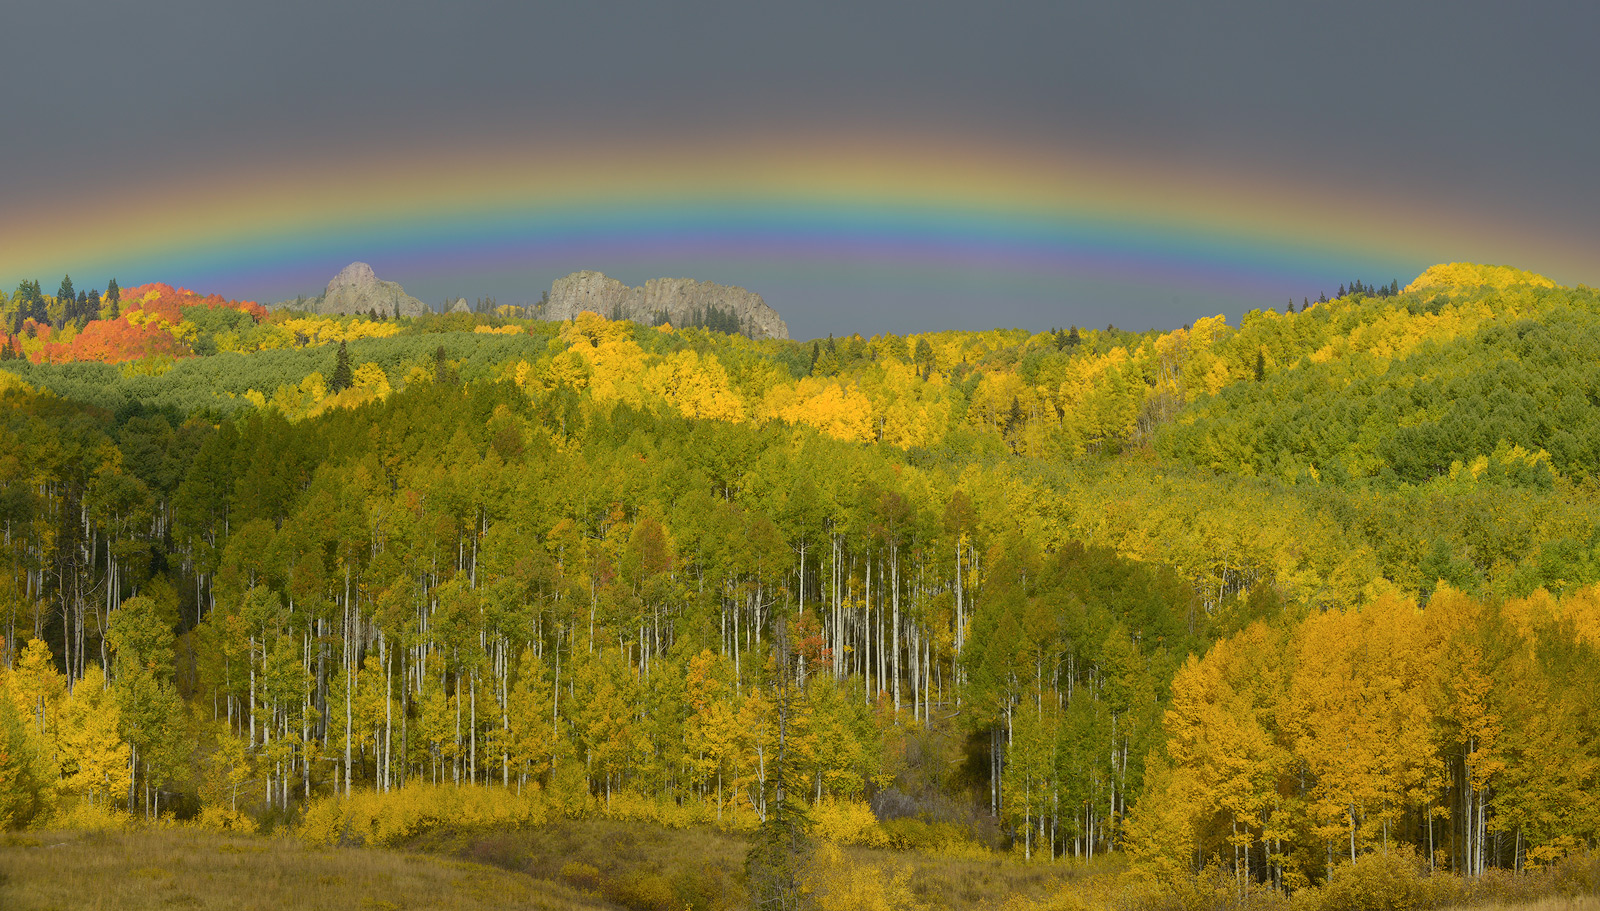 Colorado, Kebler Pass, aspen, autumn, fall, our planet, clouds, bernard chen, timescapes, golden, mountains, rainbow, photo